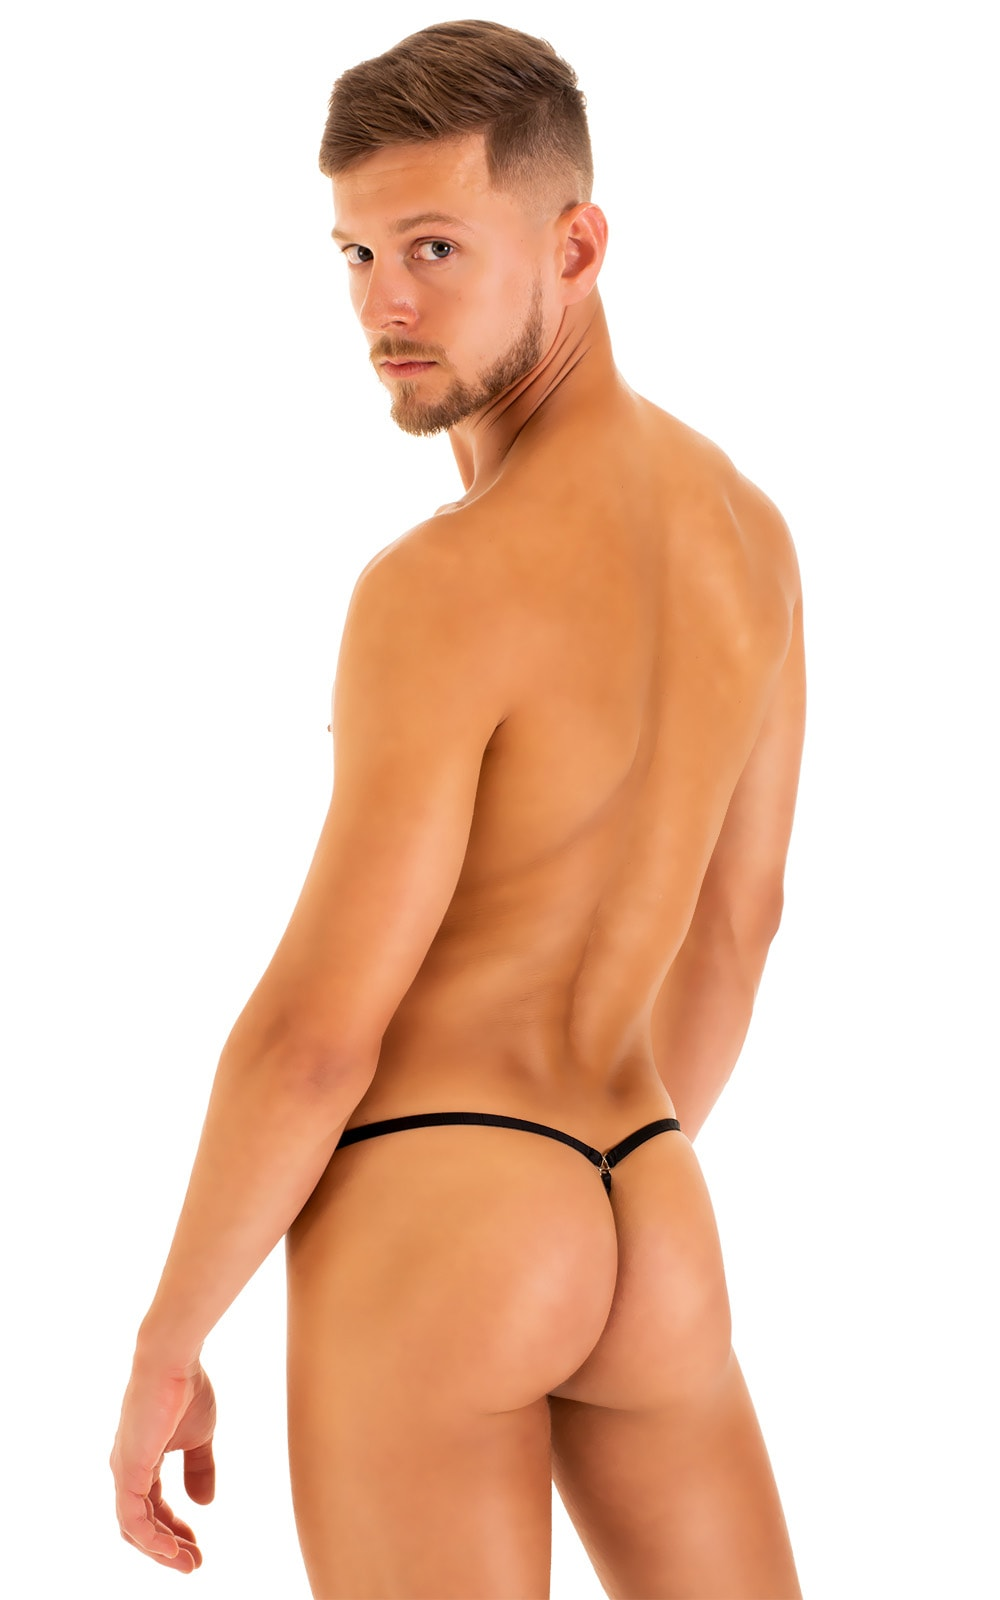 G String Swimsuit - Adjustable Pouch in Black tricot-nylon-lycra 7